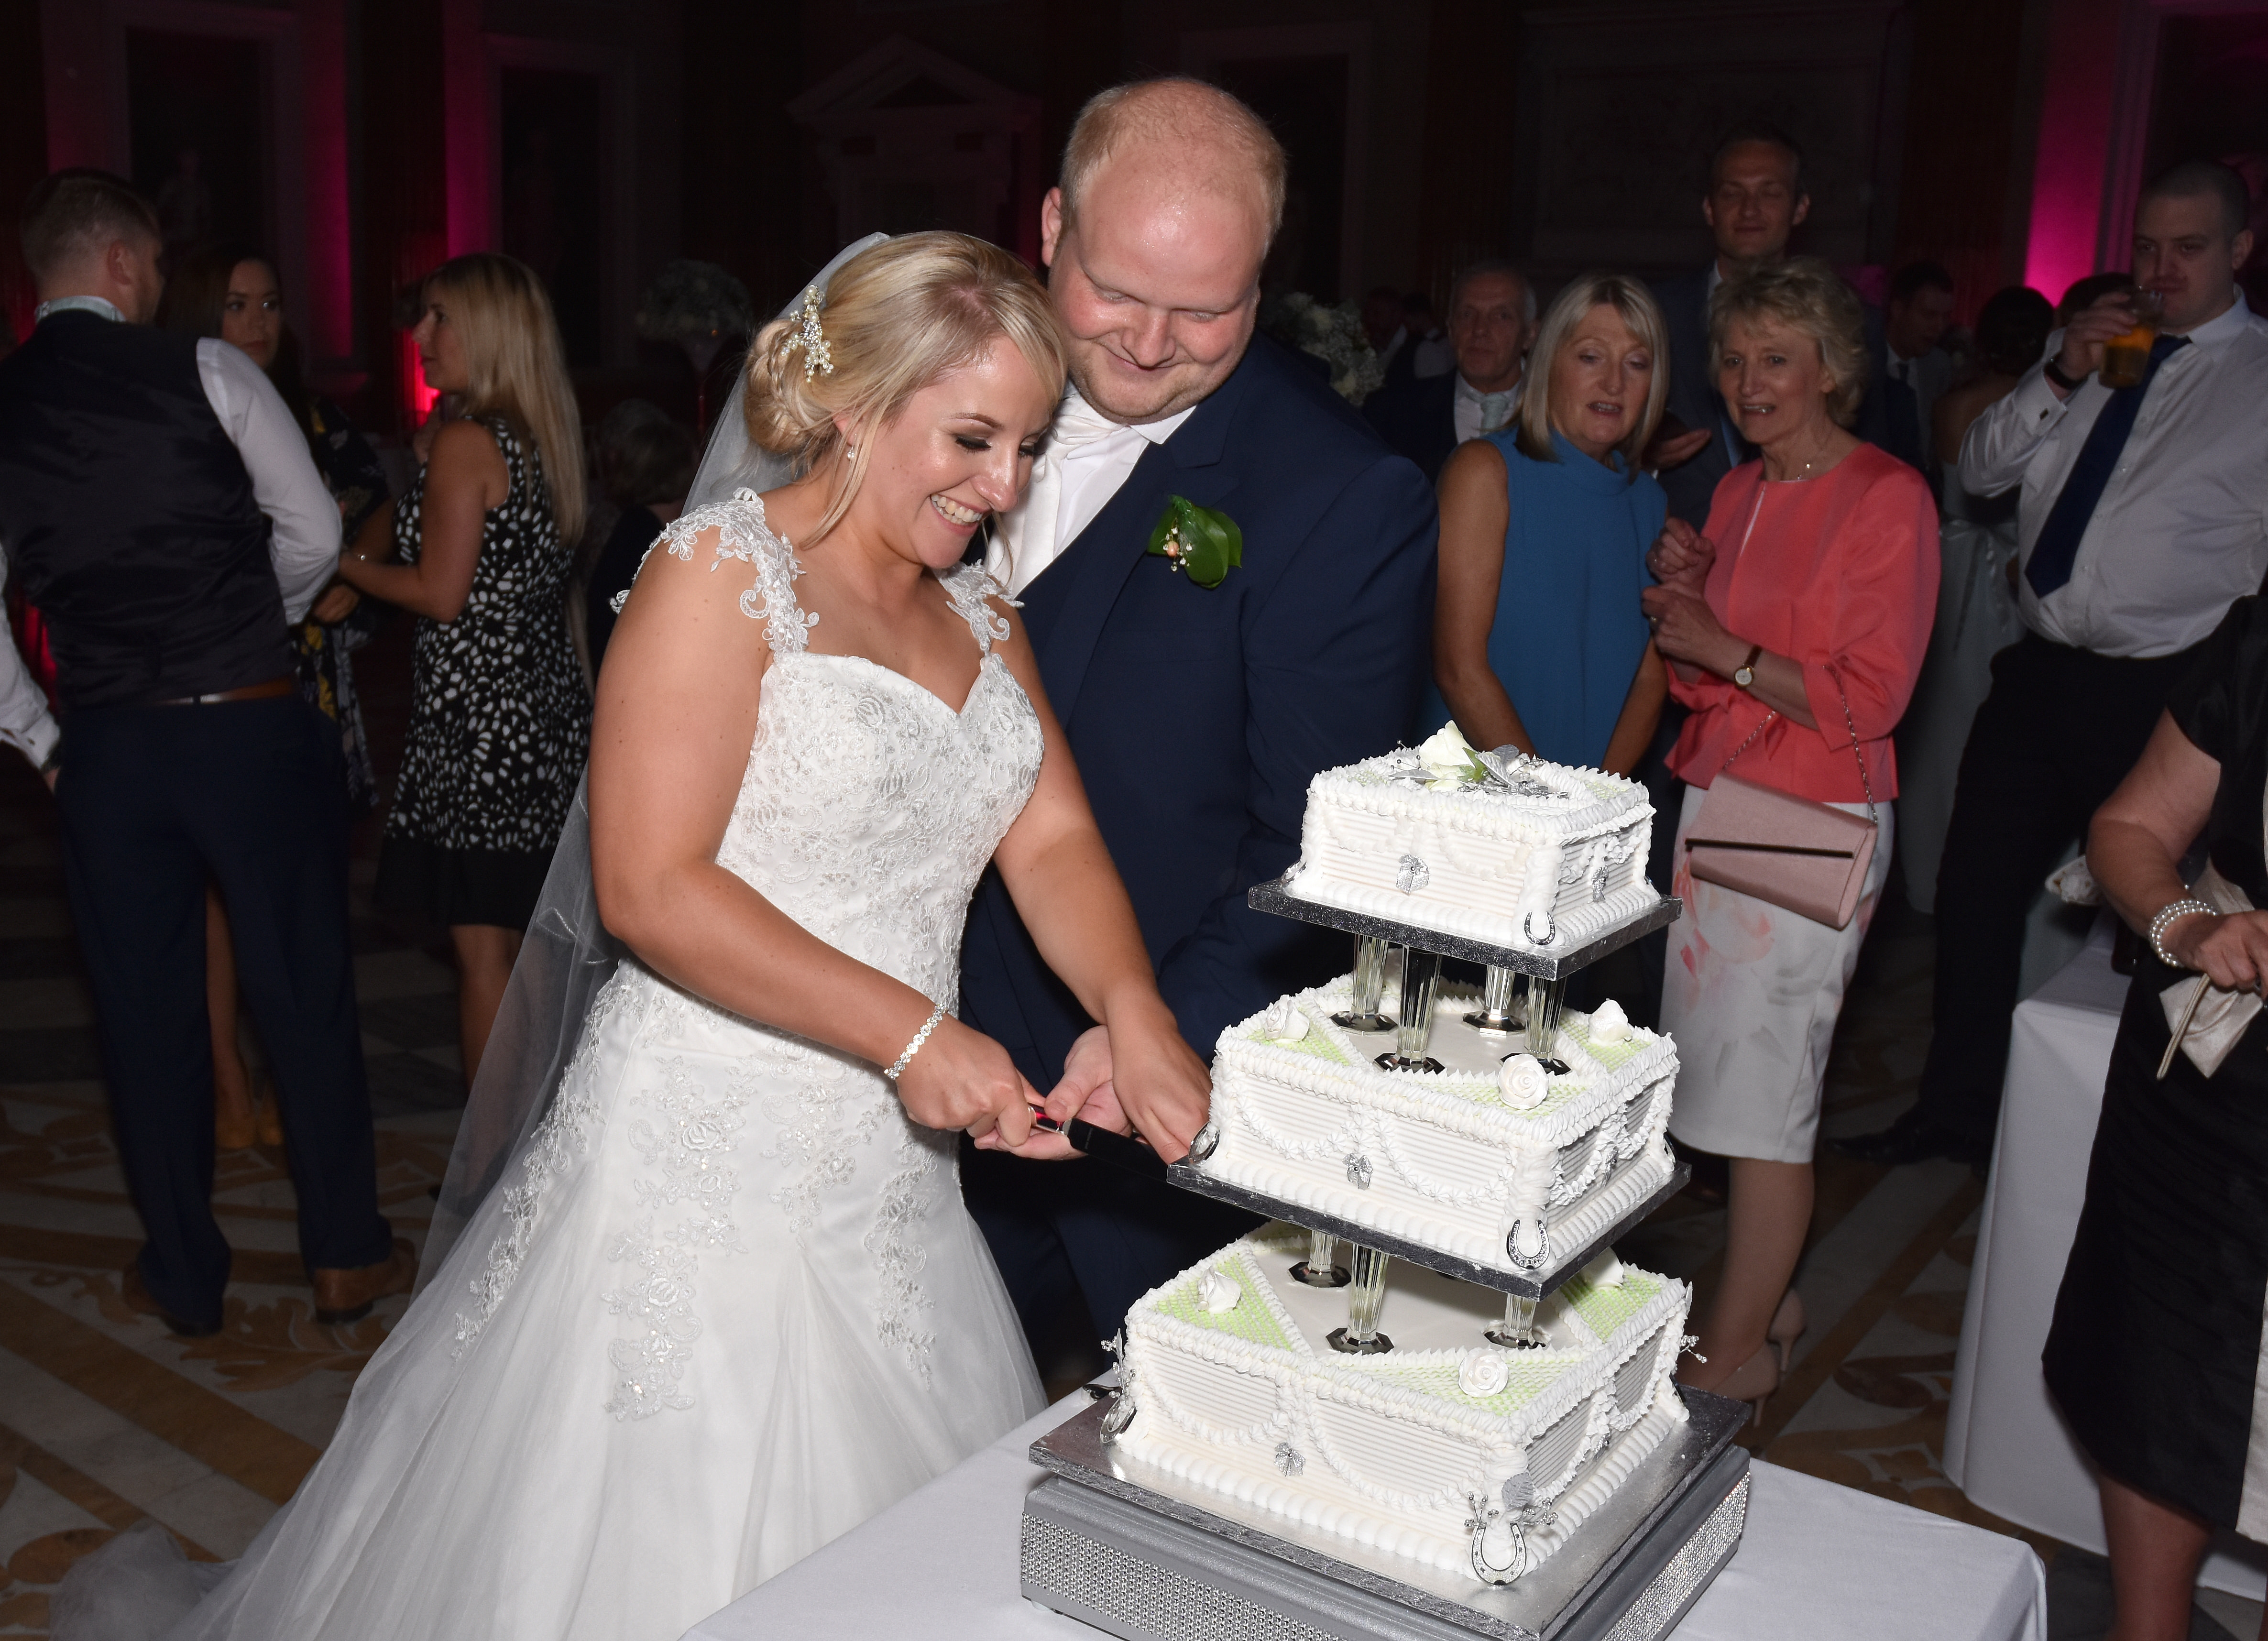 Cutting of the Cake - Nicola & Richard's Wedding at Wentworth Woodhouse